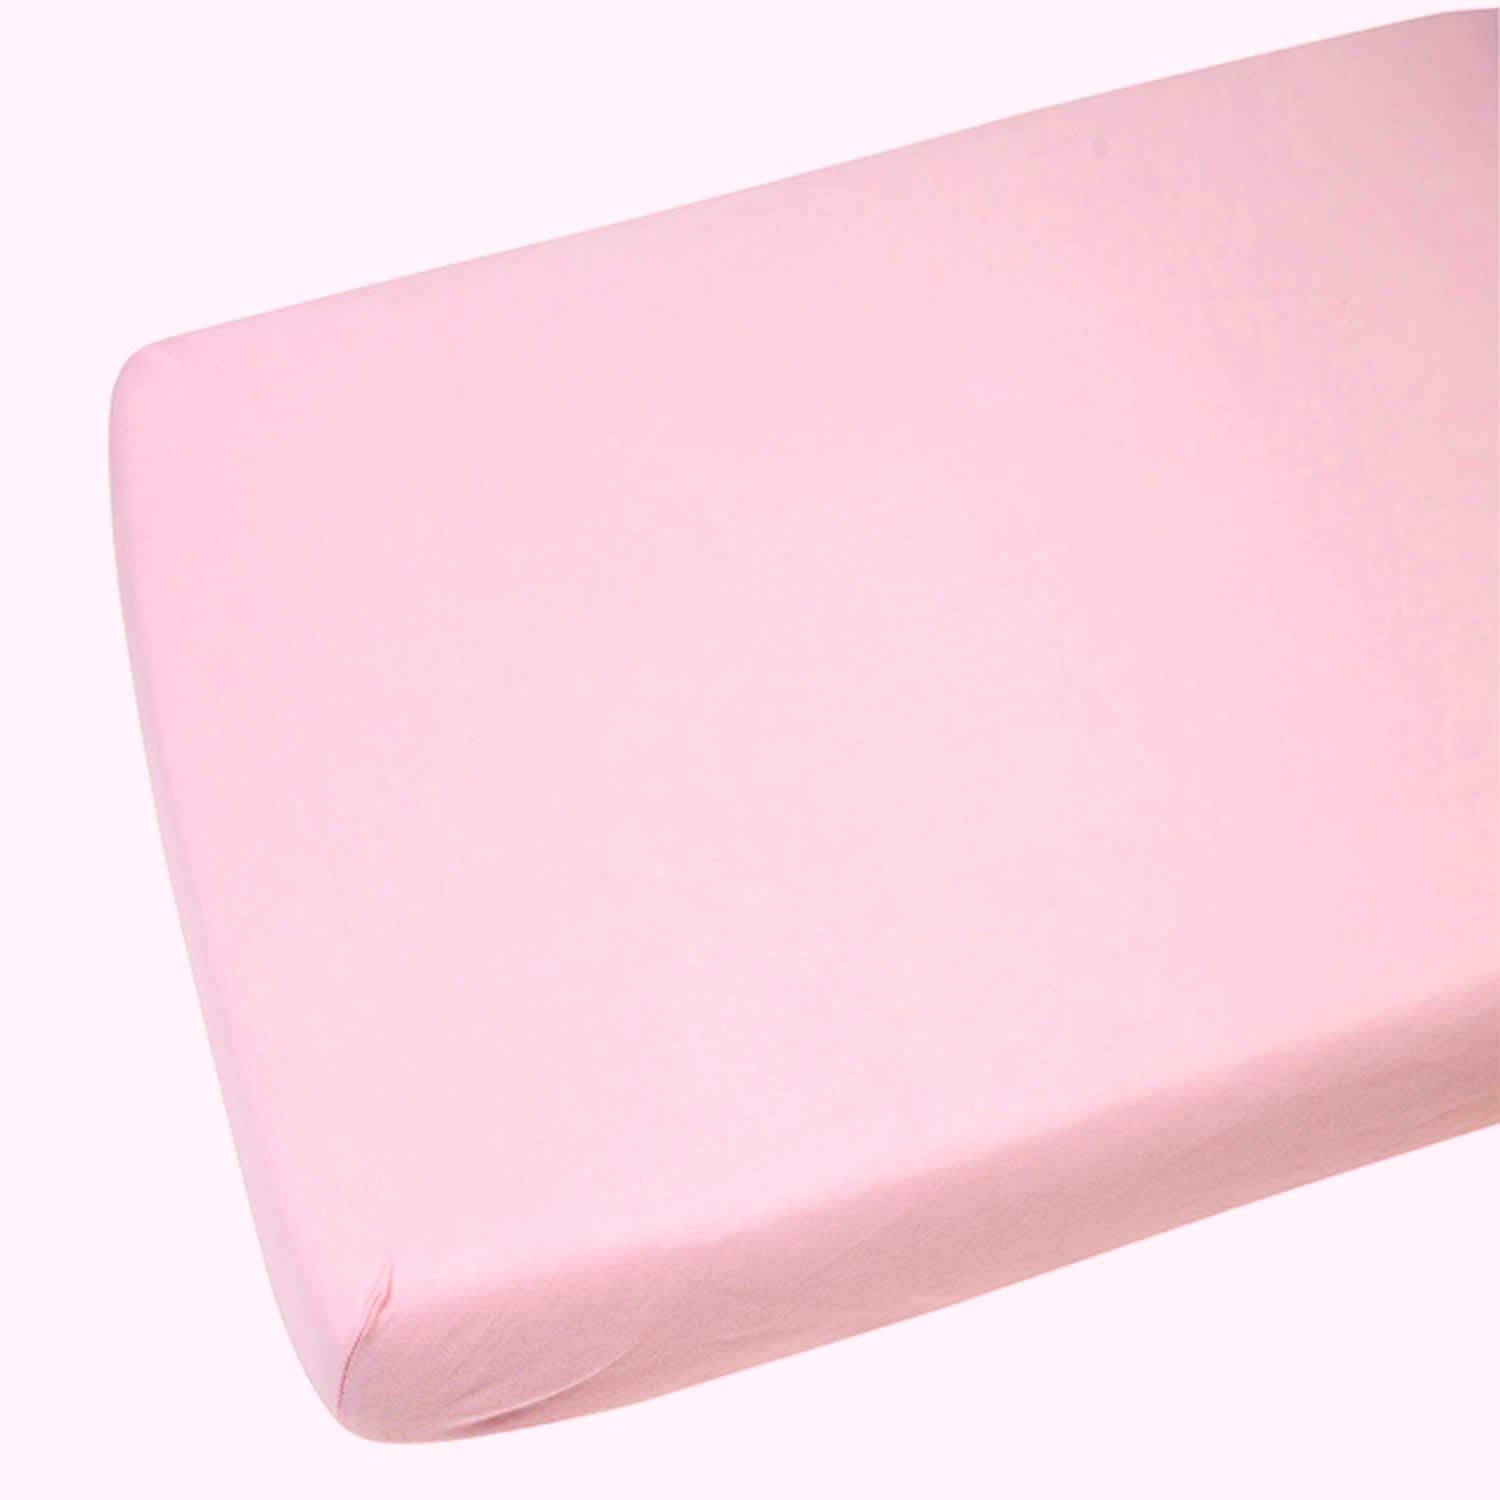 2 x Cot Fitted Sheets 100% Cotton Very Soft (60 x 120 cm) (Pink) Sasma Ltd